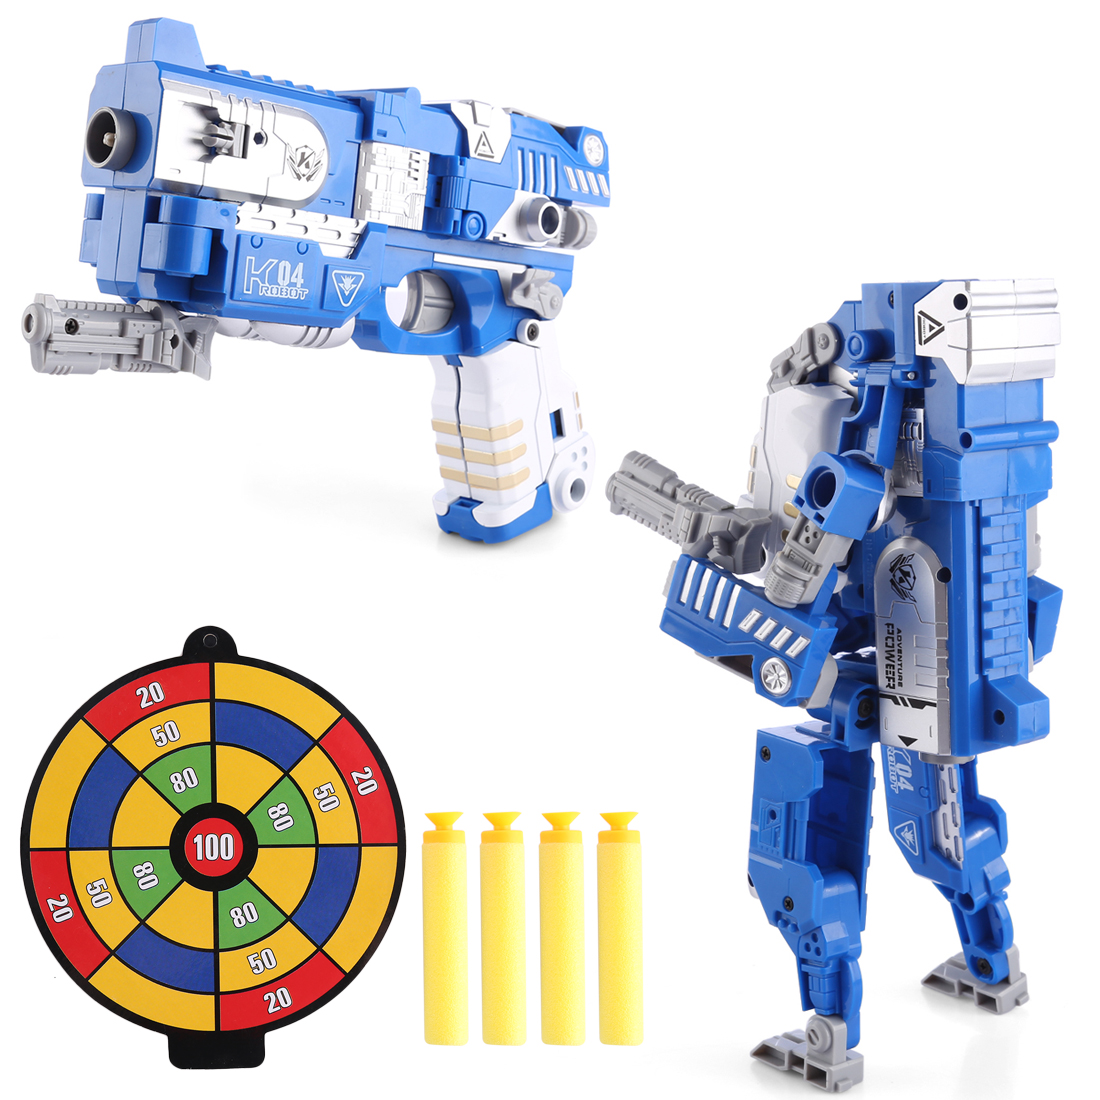 KaiLi Alloy Soft Air Blaster Educational Toy - Blue Deformation Robot Type